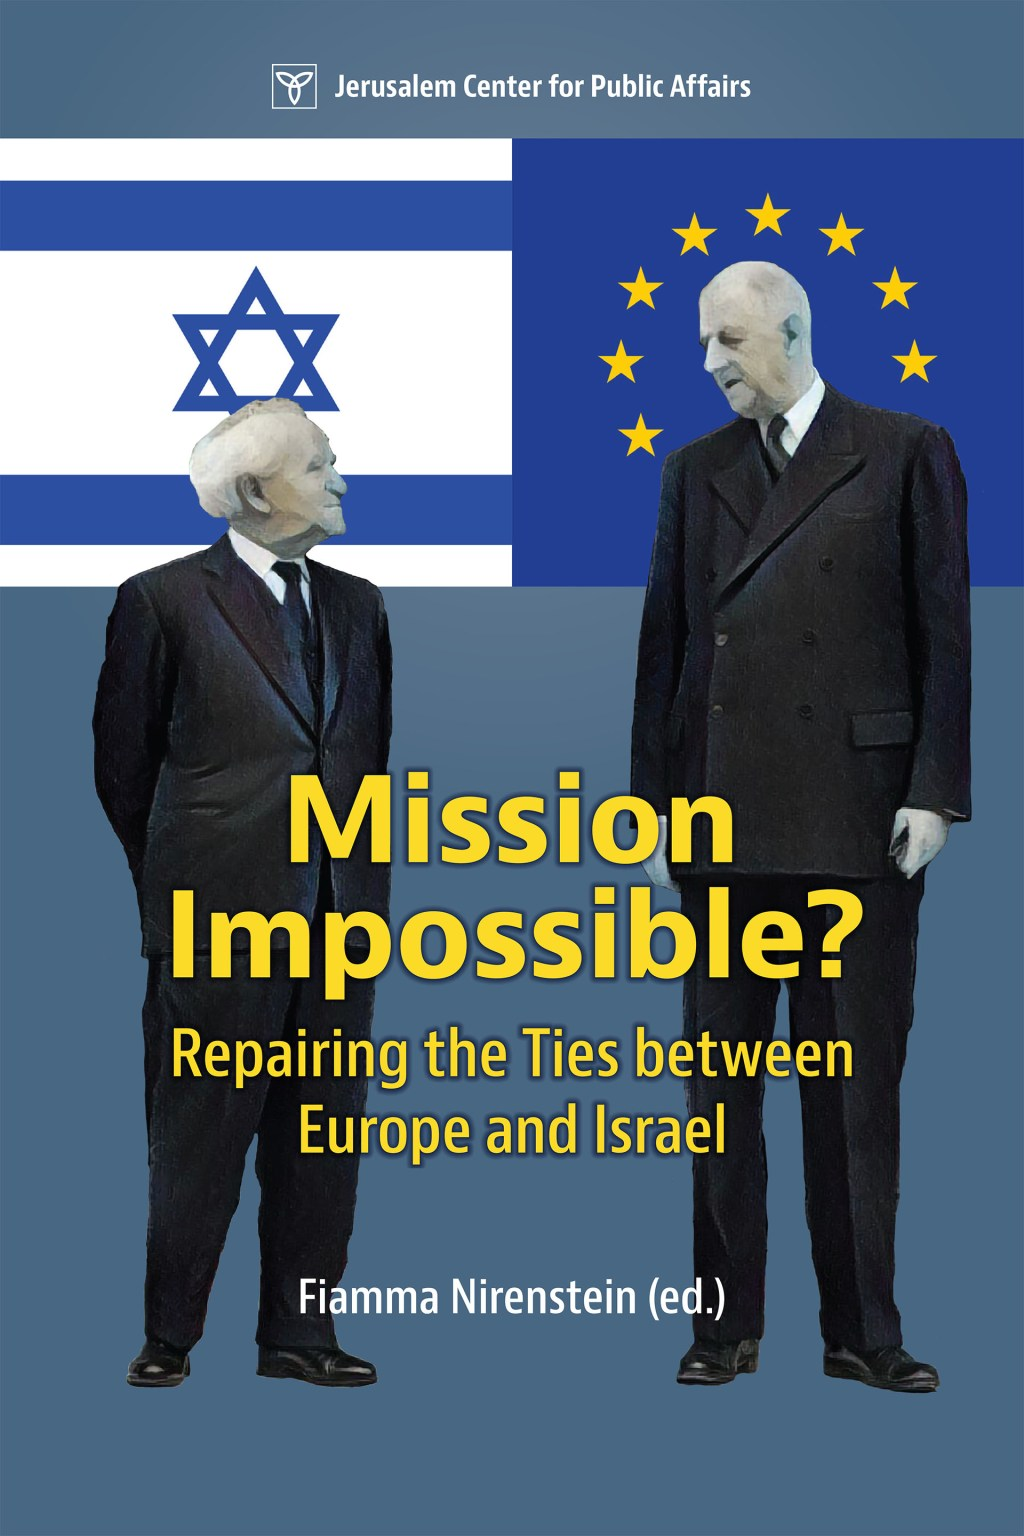 Mission Impossible? Repairing the Ties between Europe and Israel